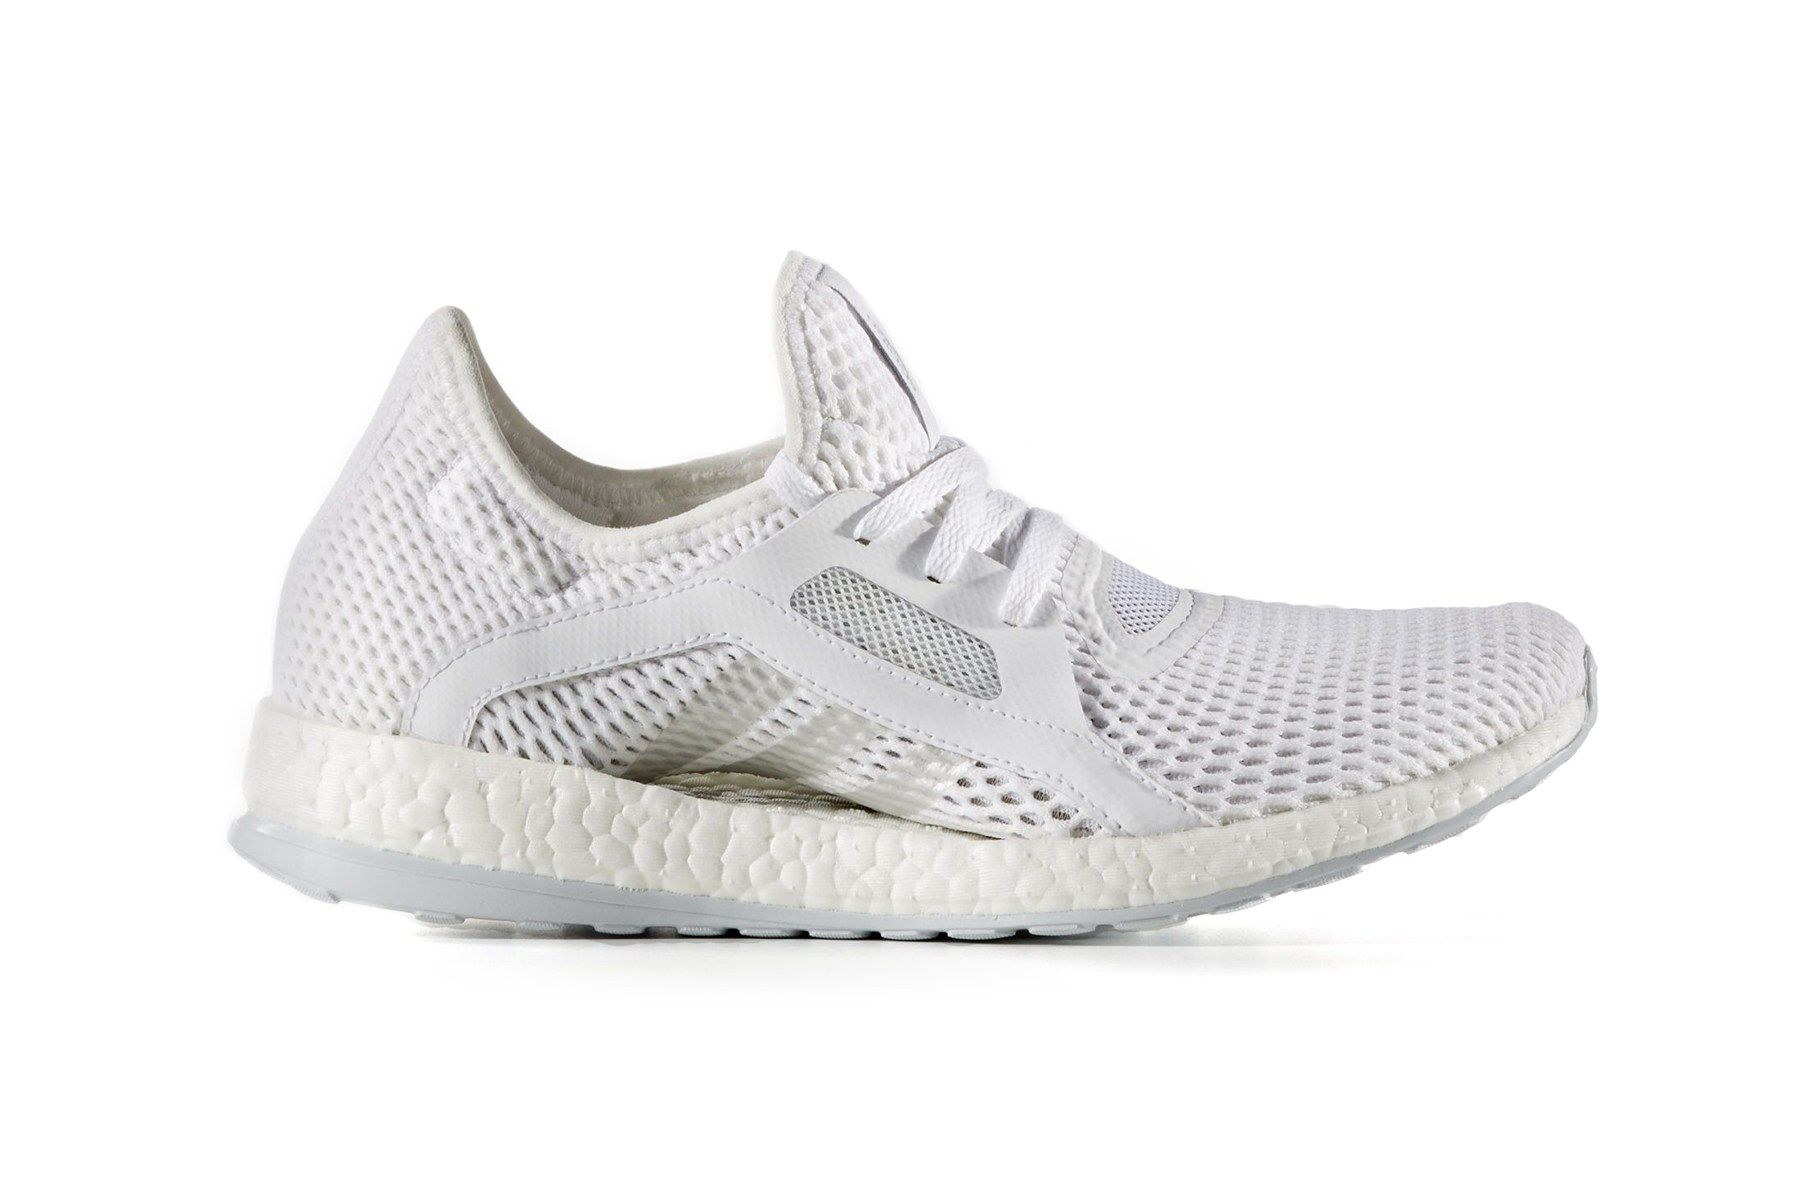 0f4a898b48d1 The Only Pair of adidas PureBOOST X You ll Need - MISSBISH